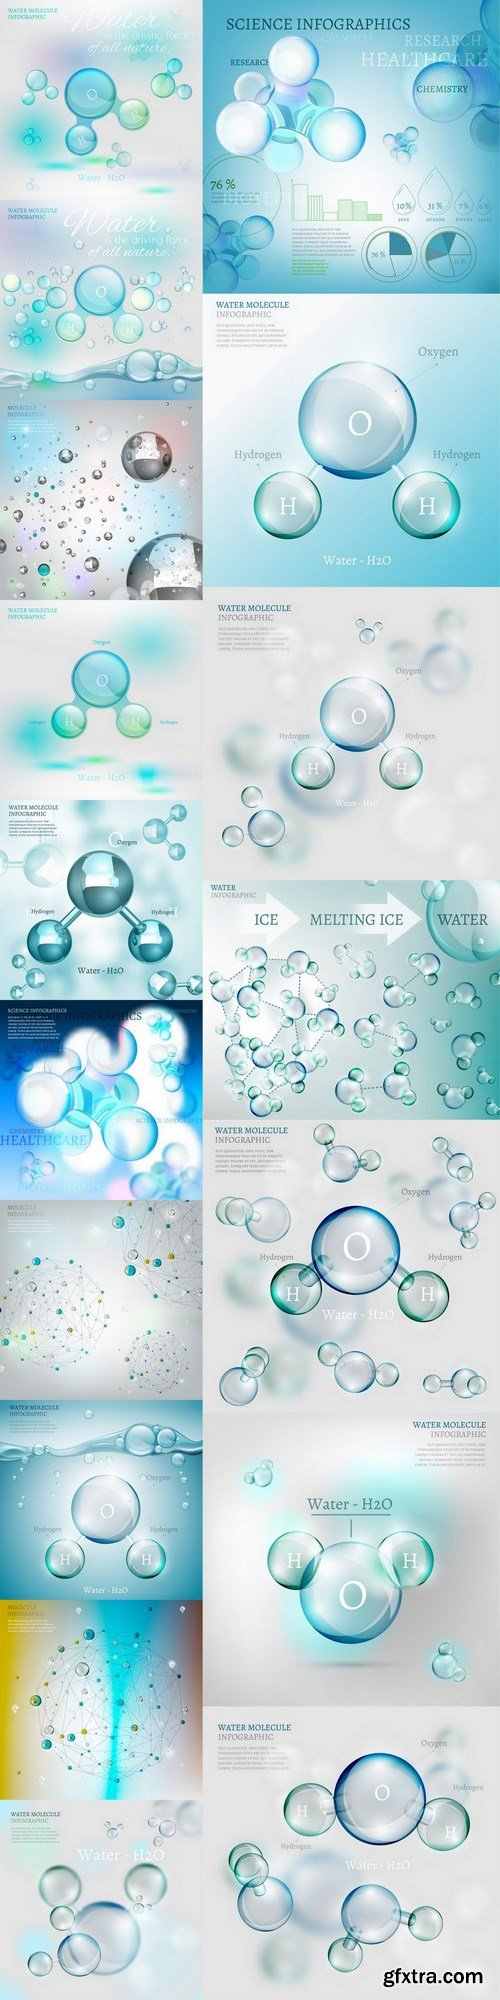 Water molecule - 17 EPS Vector Stock